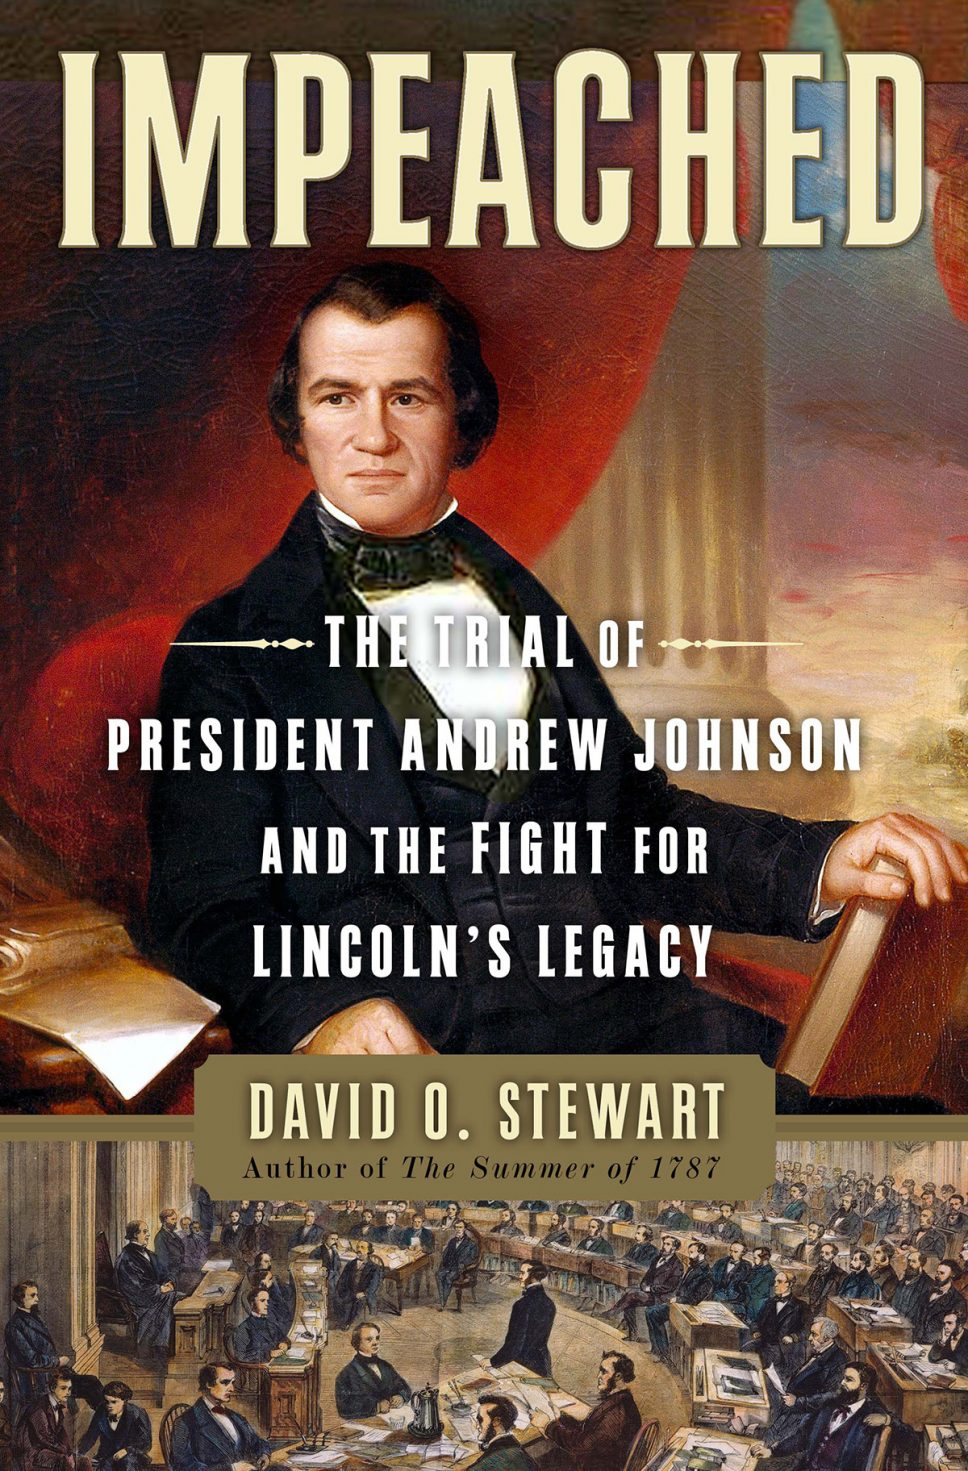 Book Cover: Impeached: The Trial of President Andrew Johnson and the Fight for Lincoln's Legacy with David Stewart